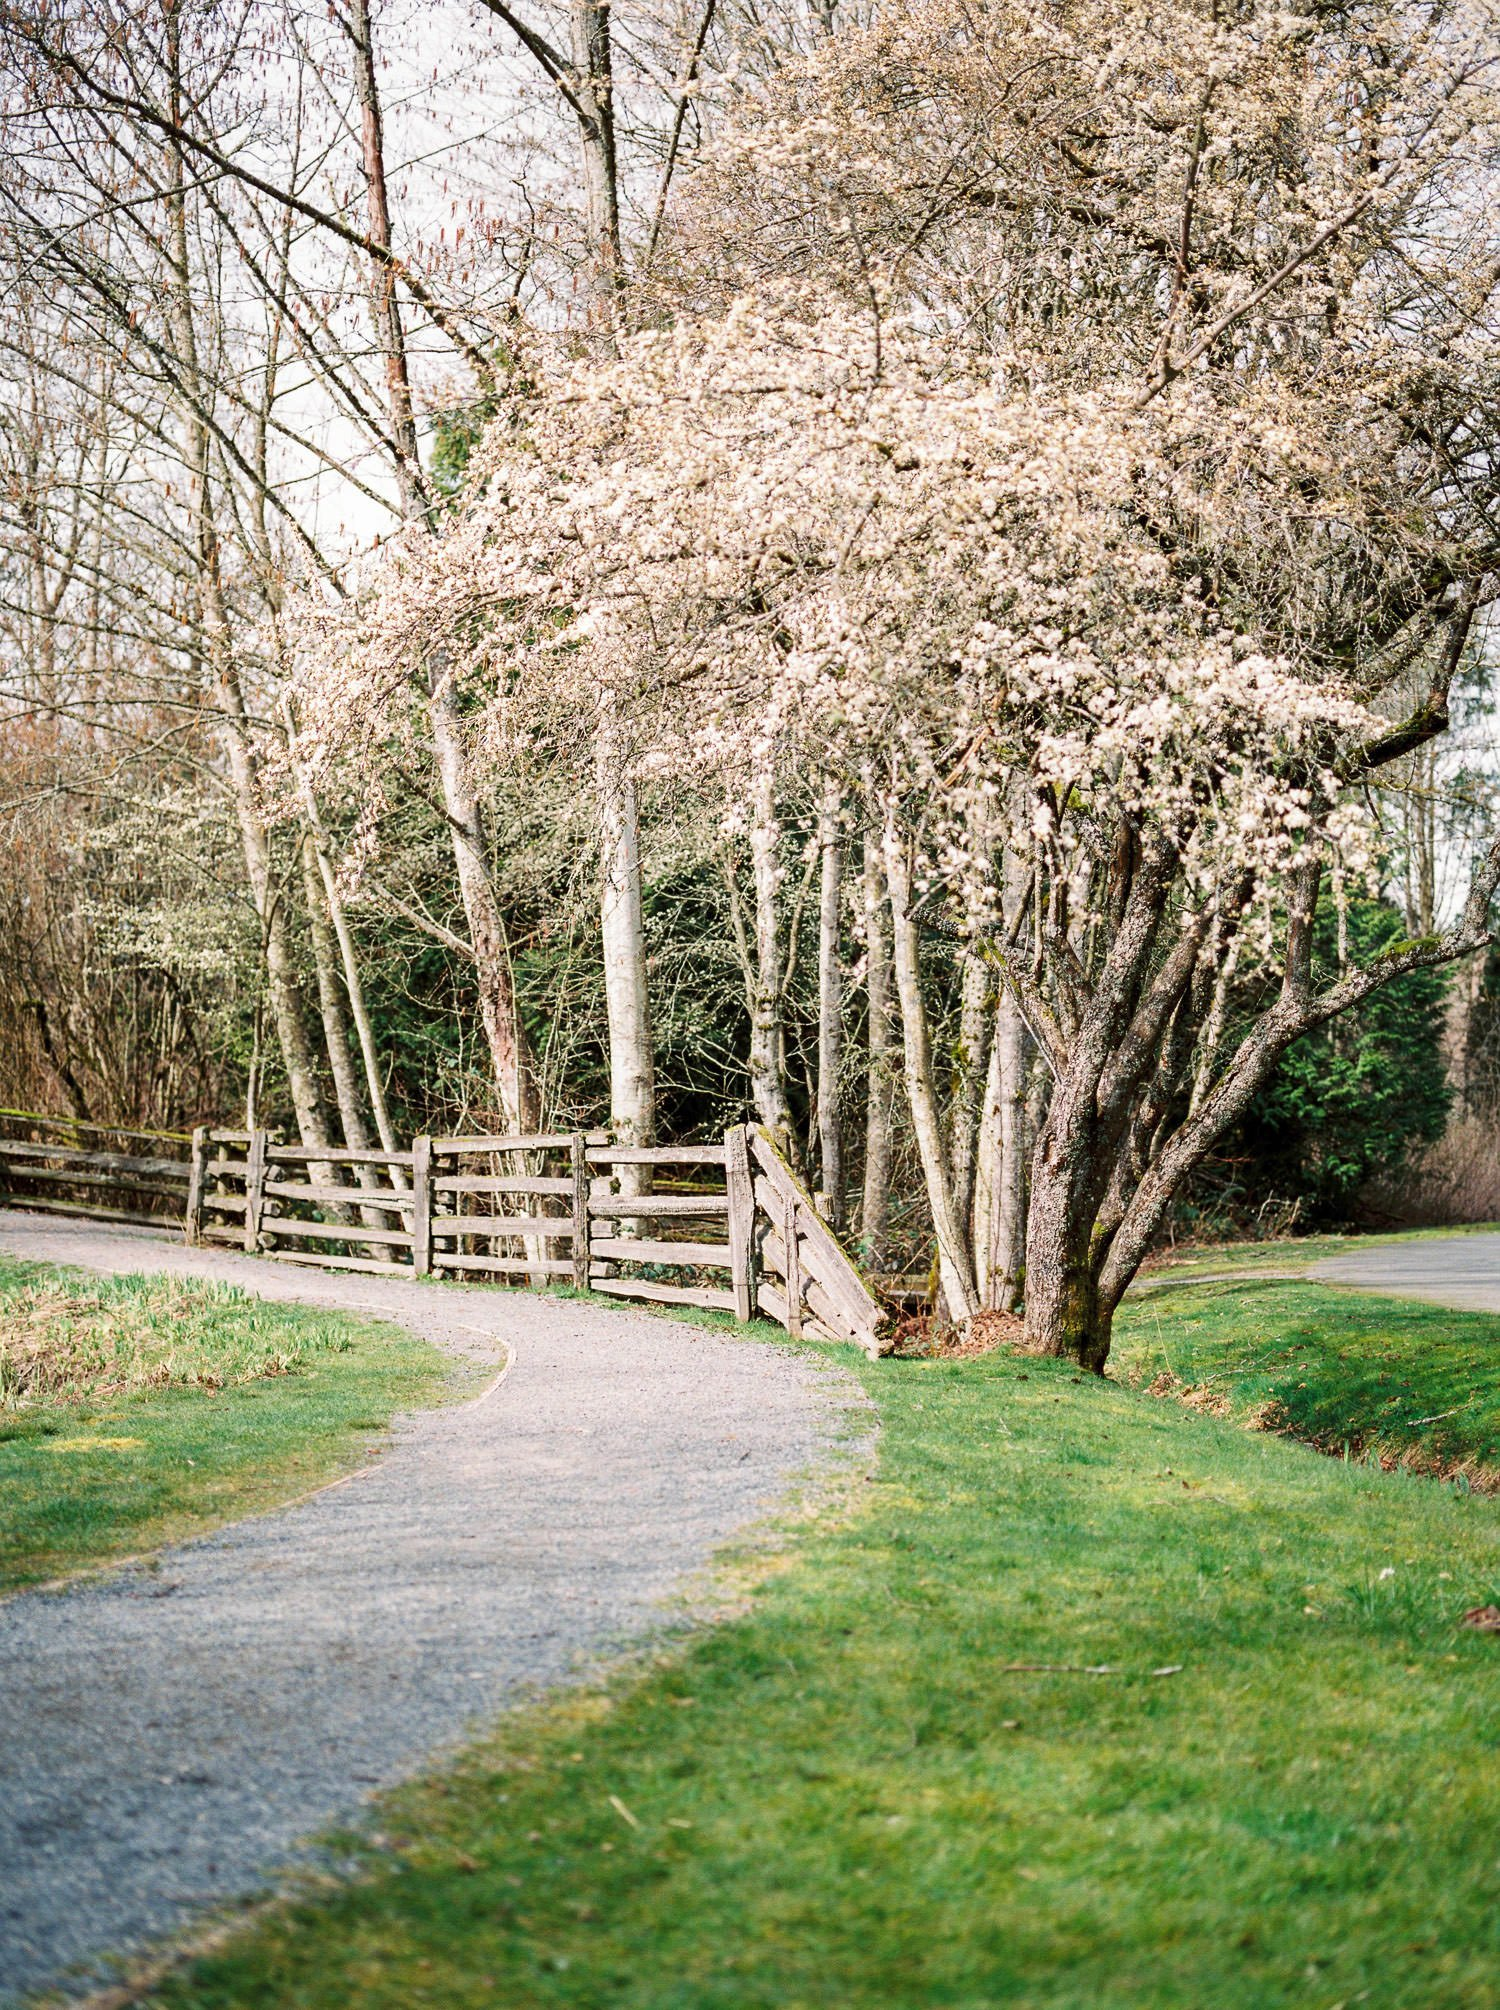 Cherry trees blooming